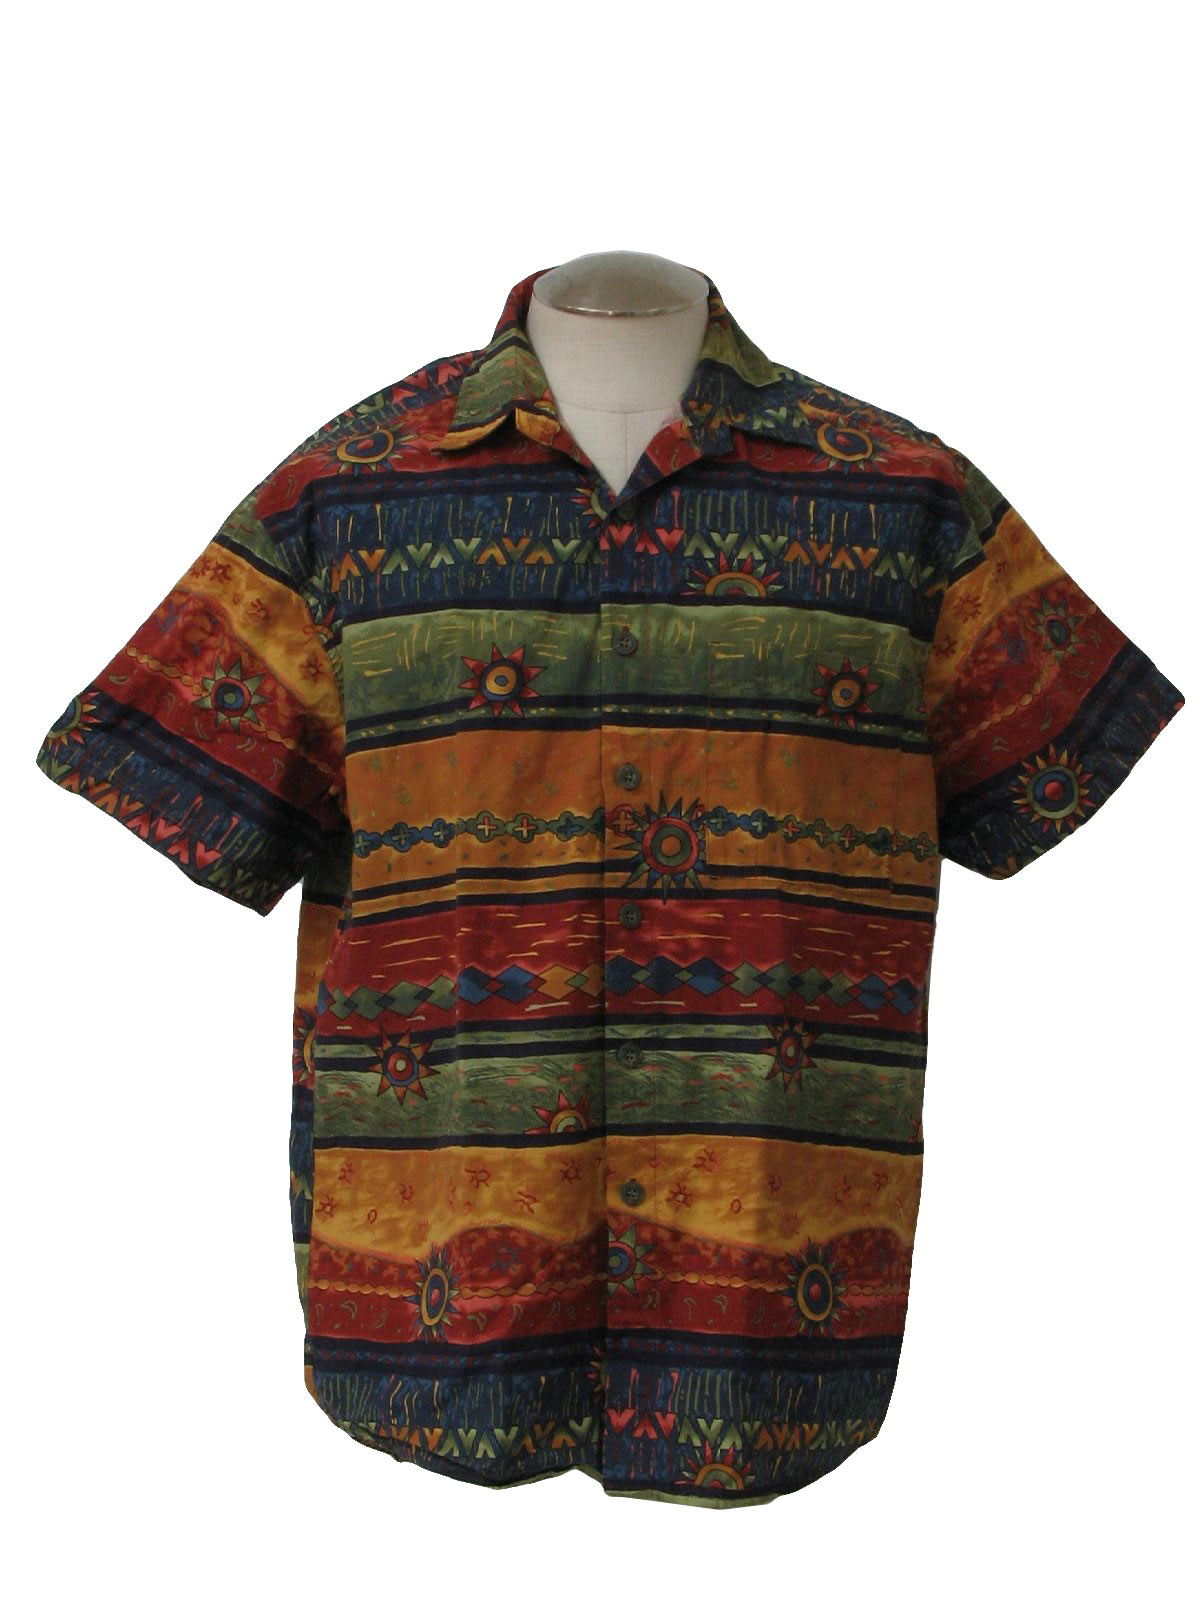 1990s Vintage The Territory Ahead Shirt 90s The